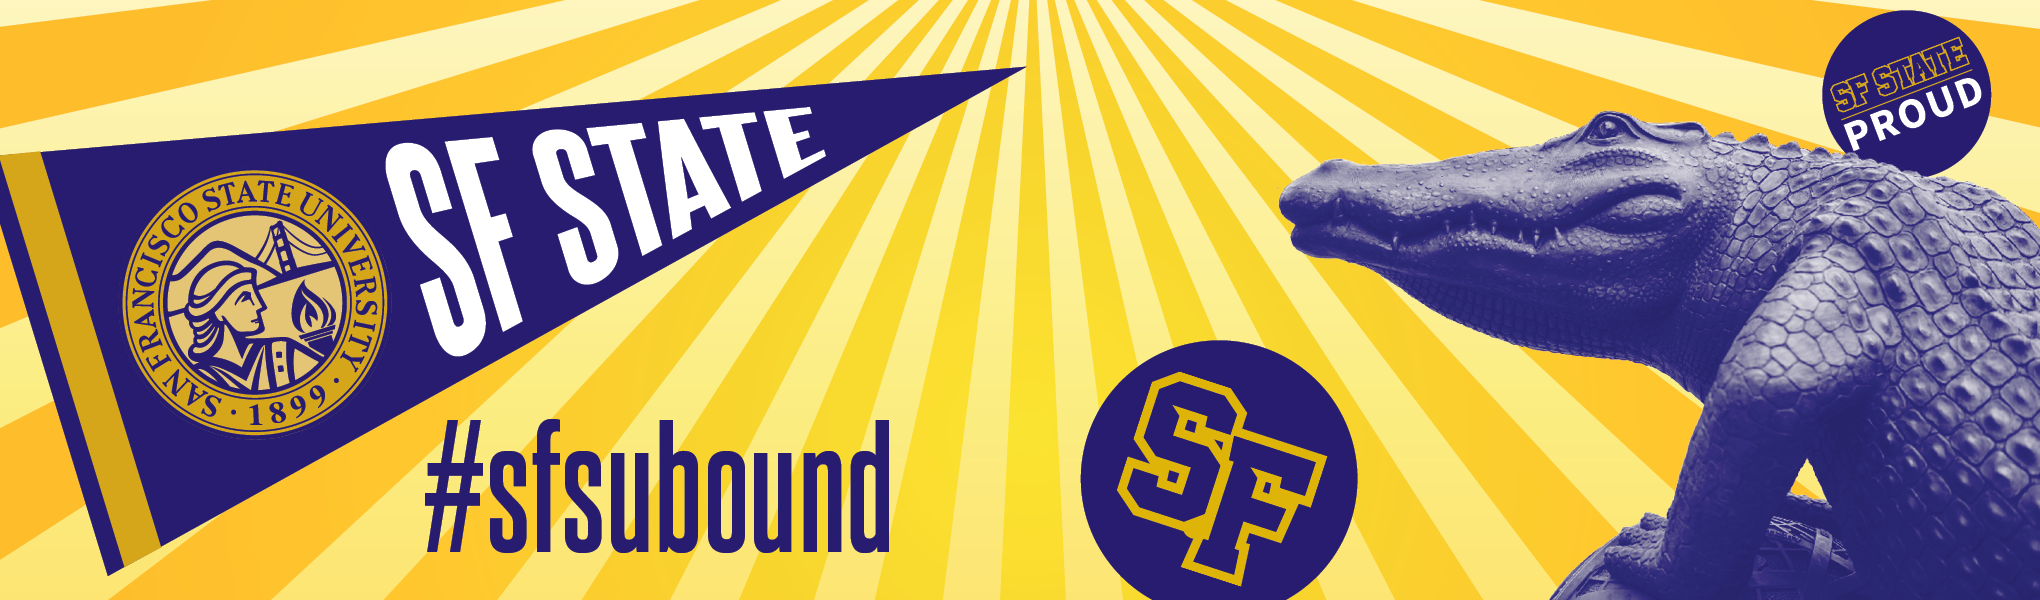 SFSU Bound banner with Gator art